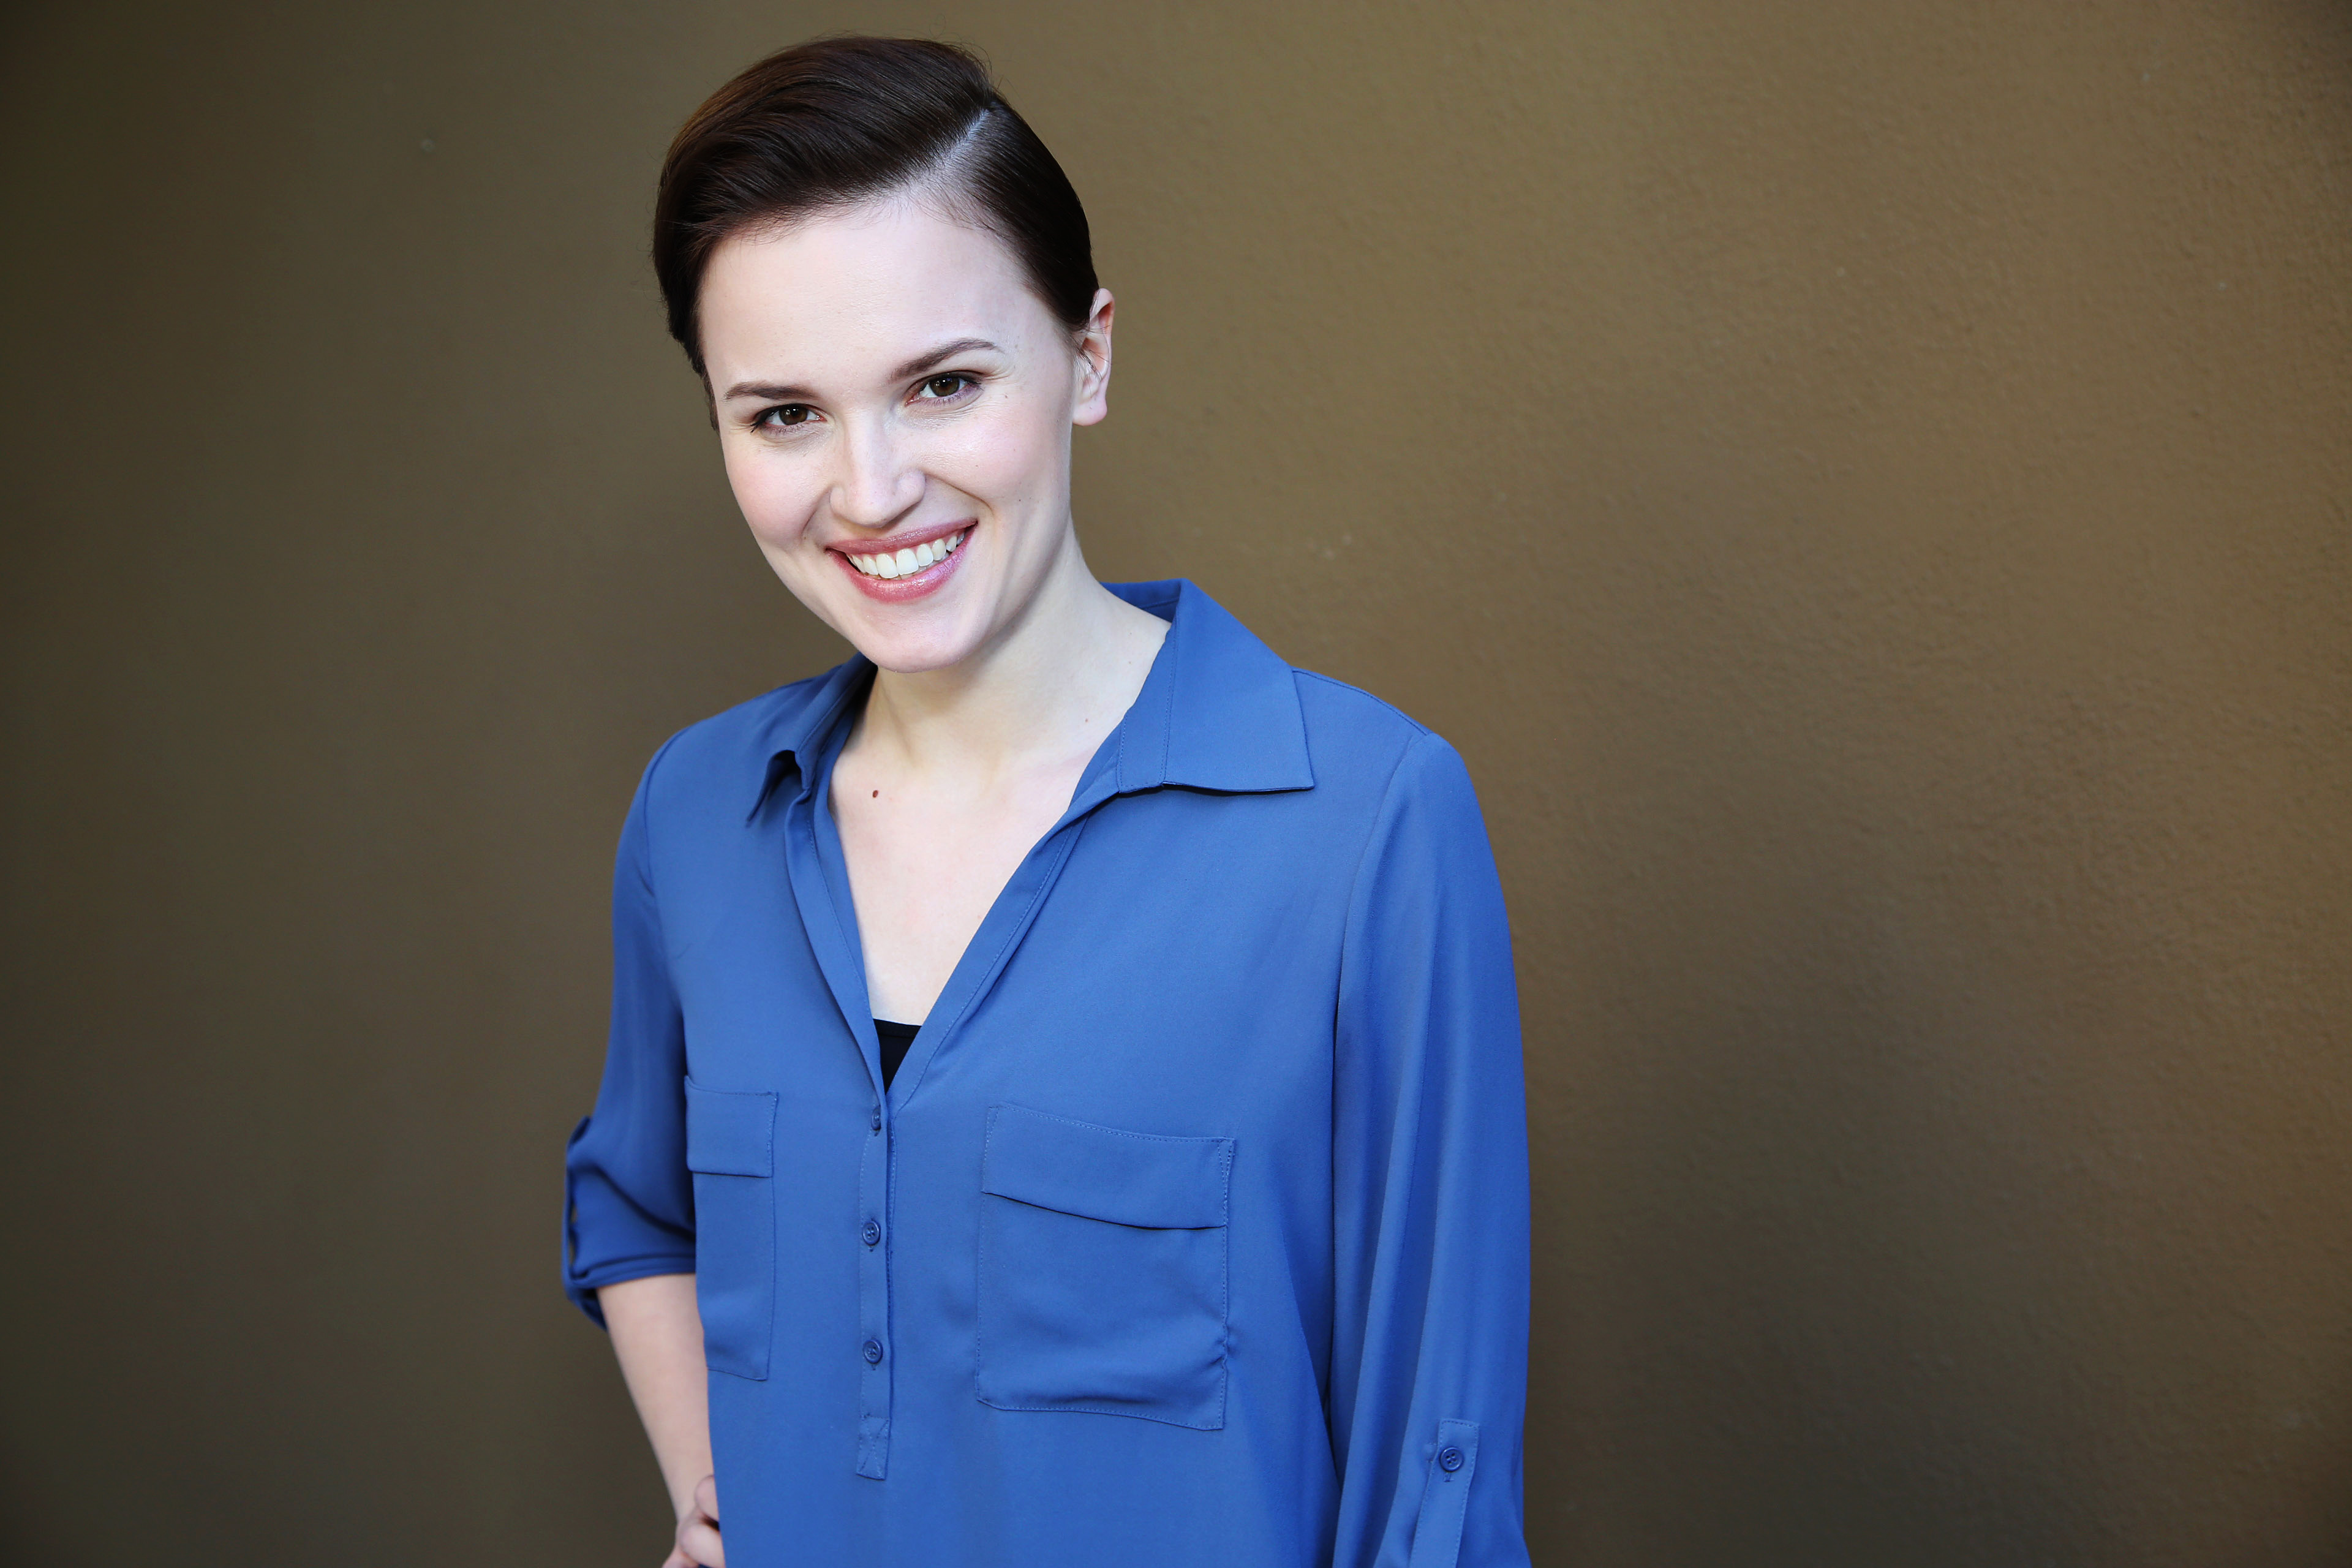 Veronica Roth working on new series; 1st book due in 2017